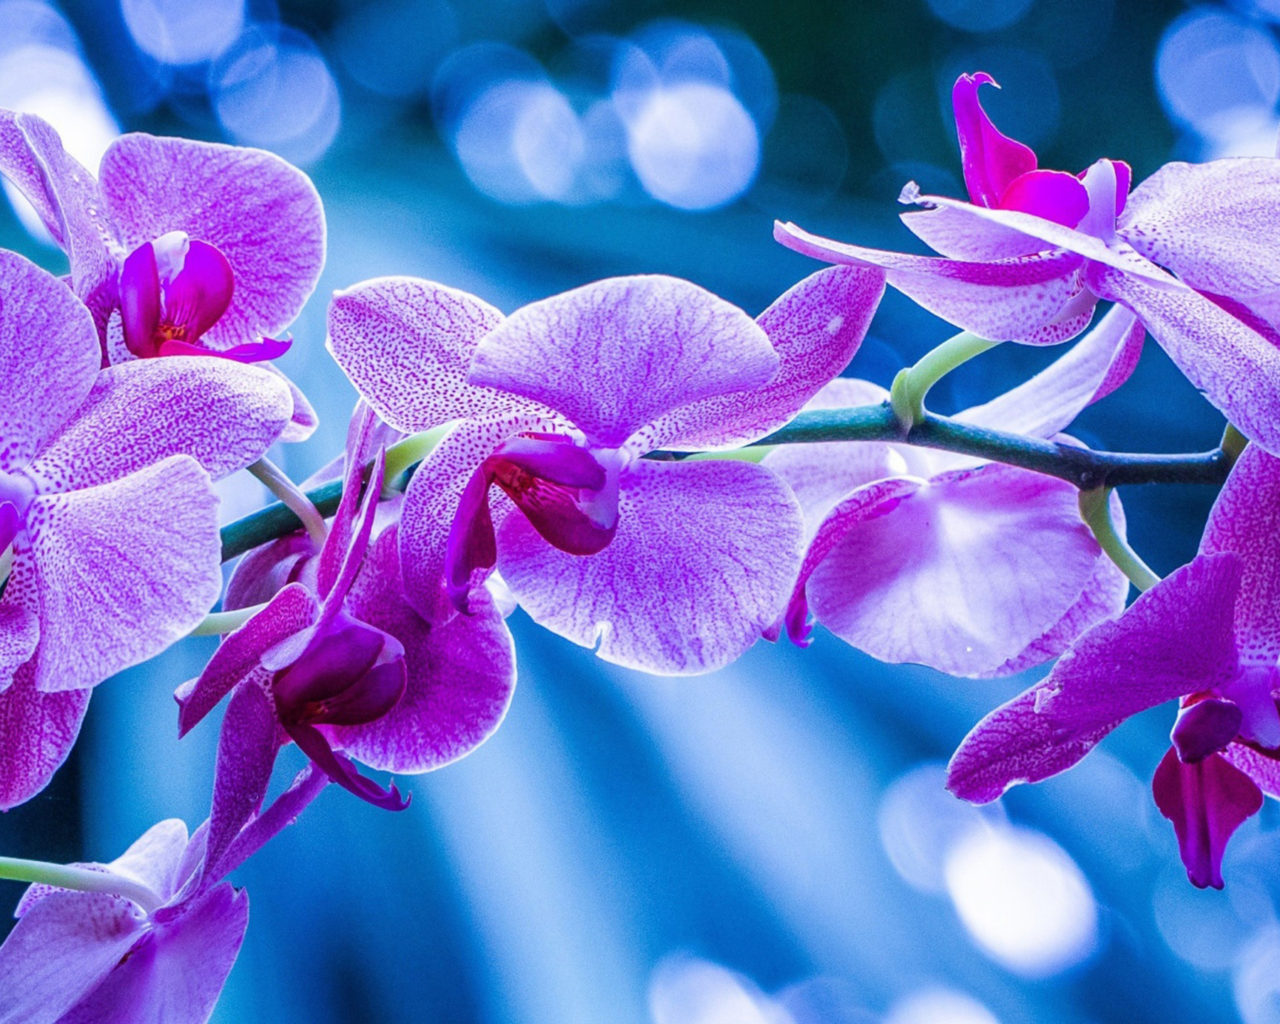 Black Daisy Wallpaper Purple Orchid Flowers Picture Hd Wallpapers 2560x1440